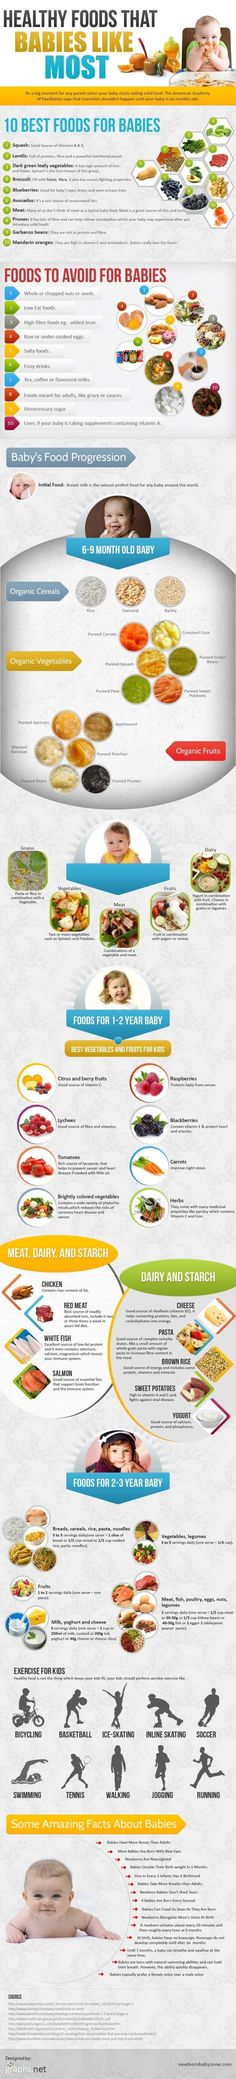 Healthy Foods That Babies Like Most Infographic